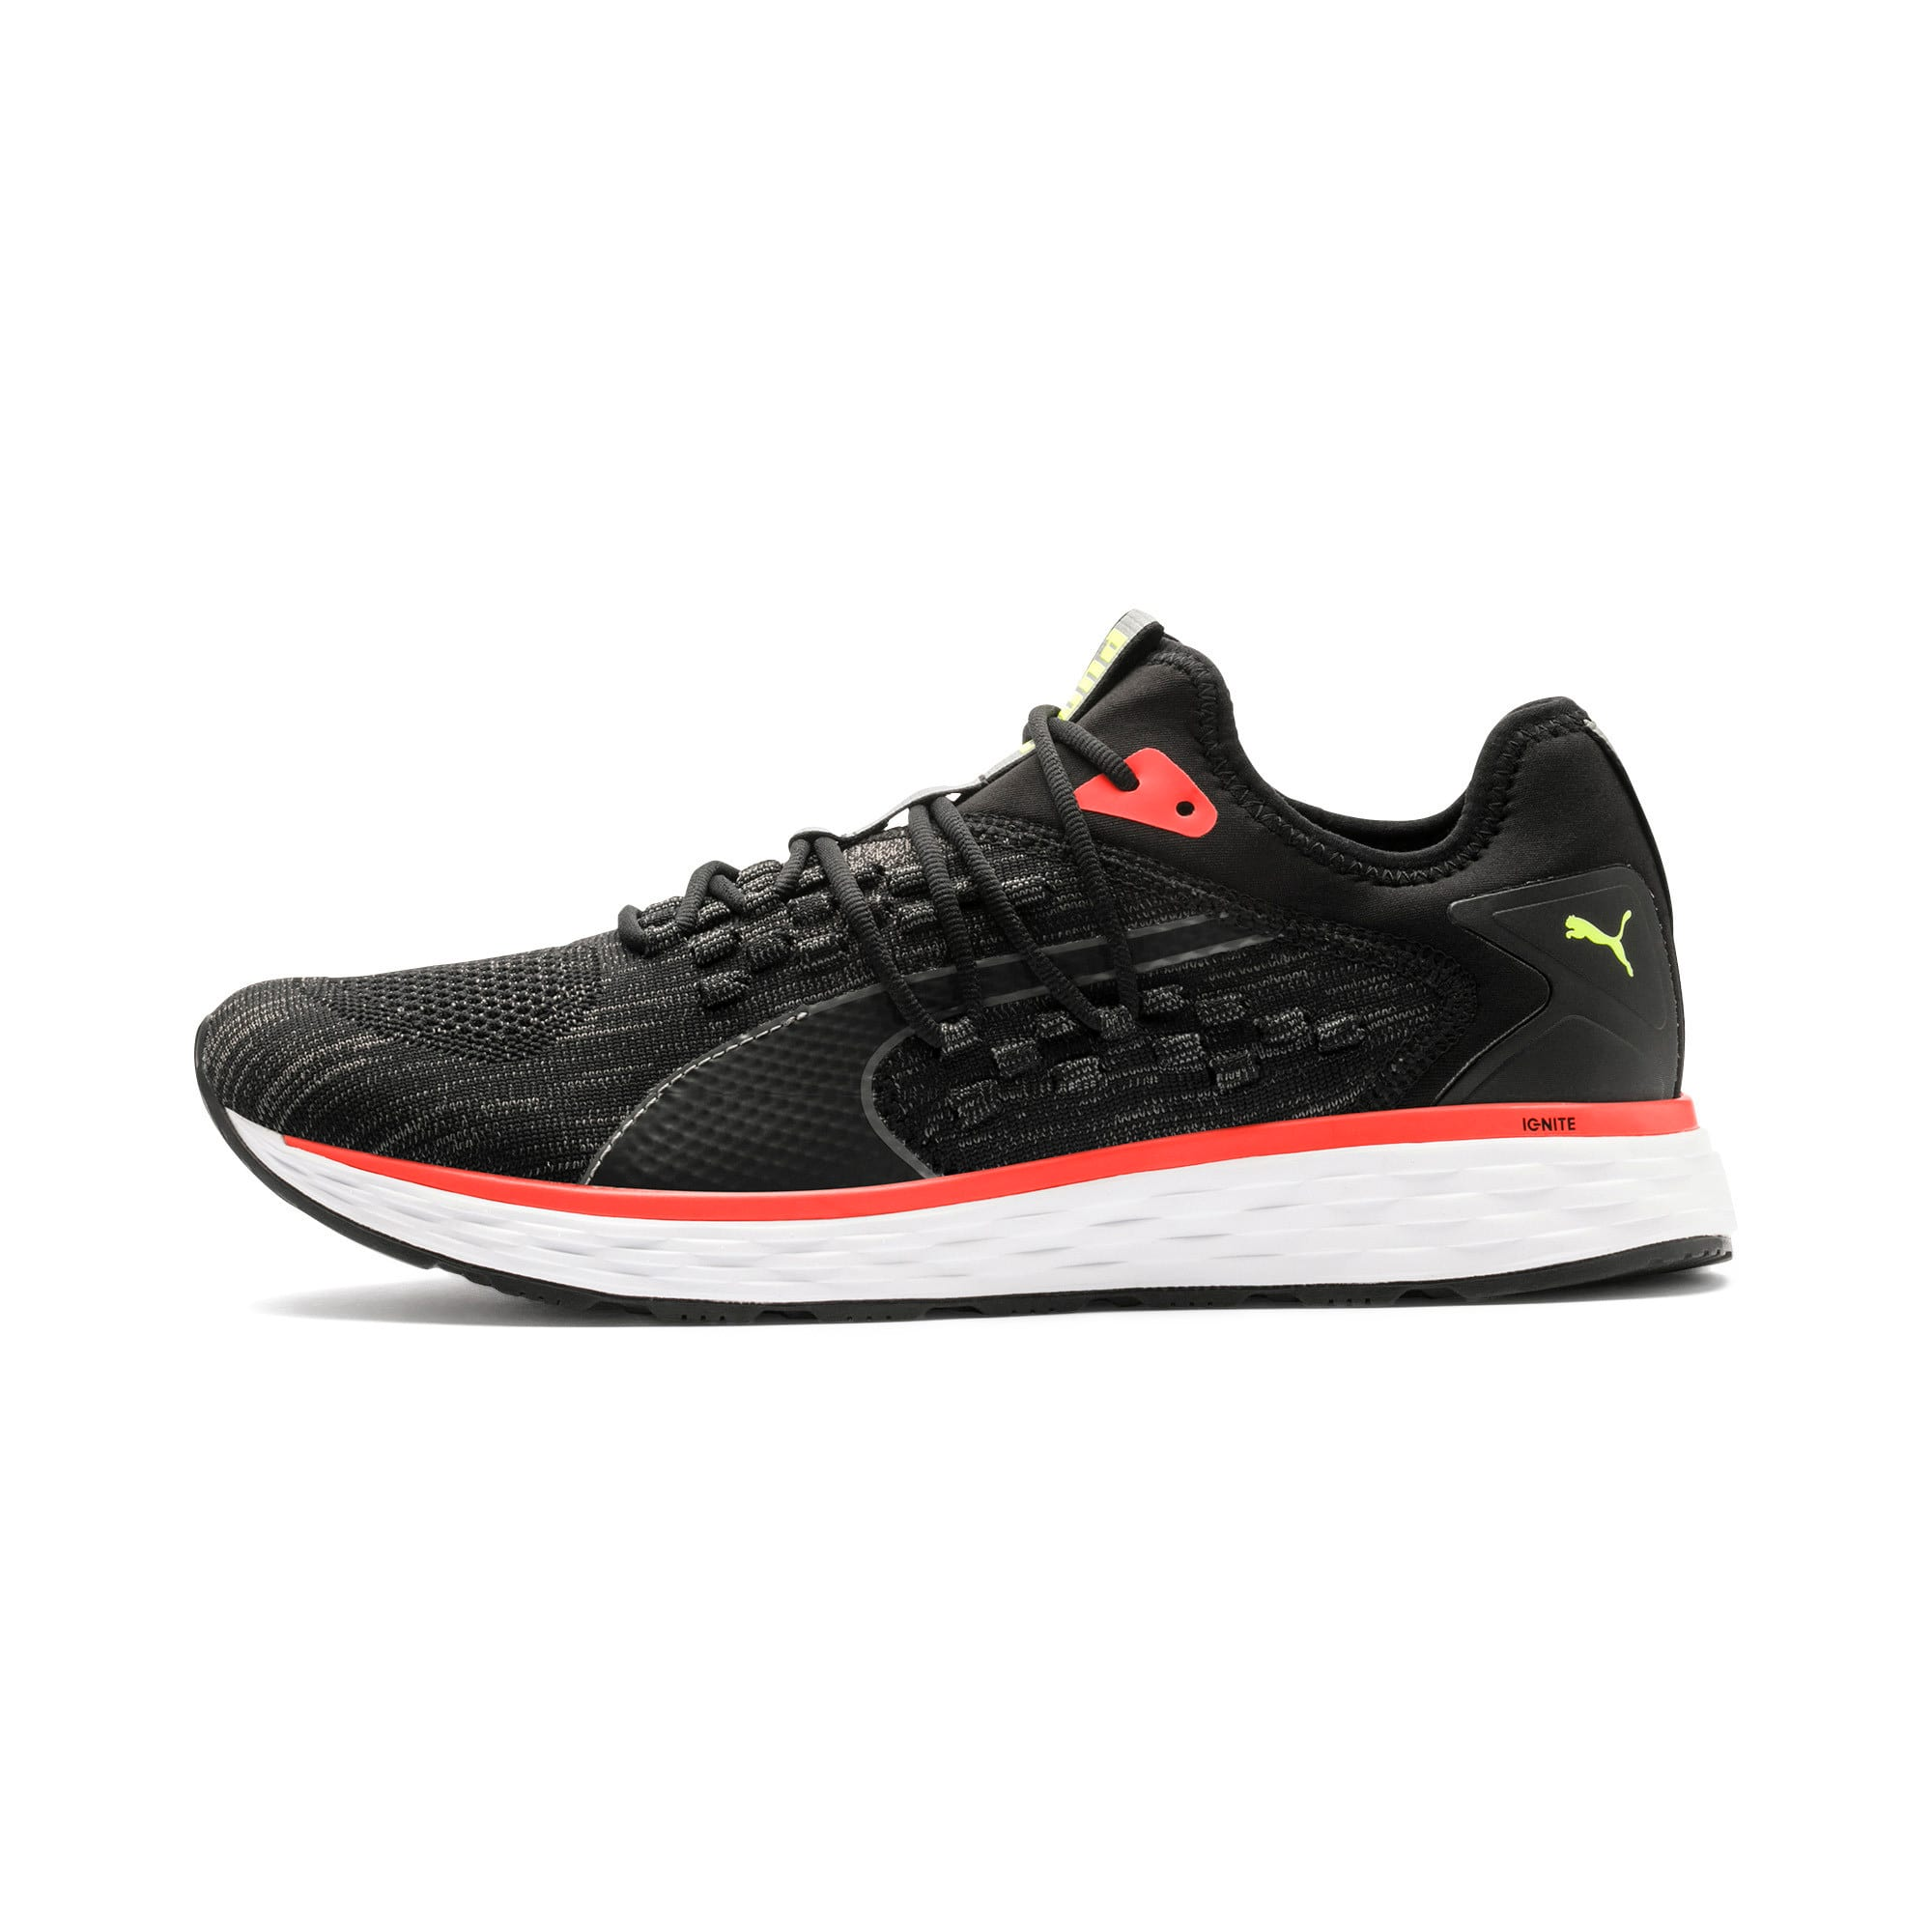 Thumbnail 1 of SPEED FUSEFIT Men's Running Shoes, Puma Black-Nrgy Red, medium-IND